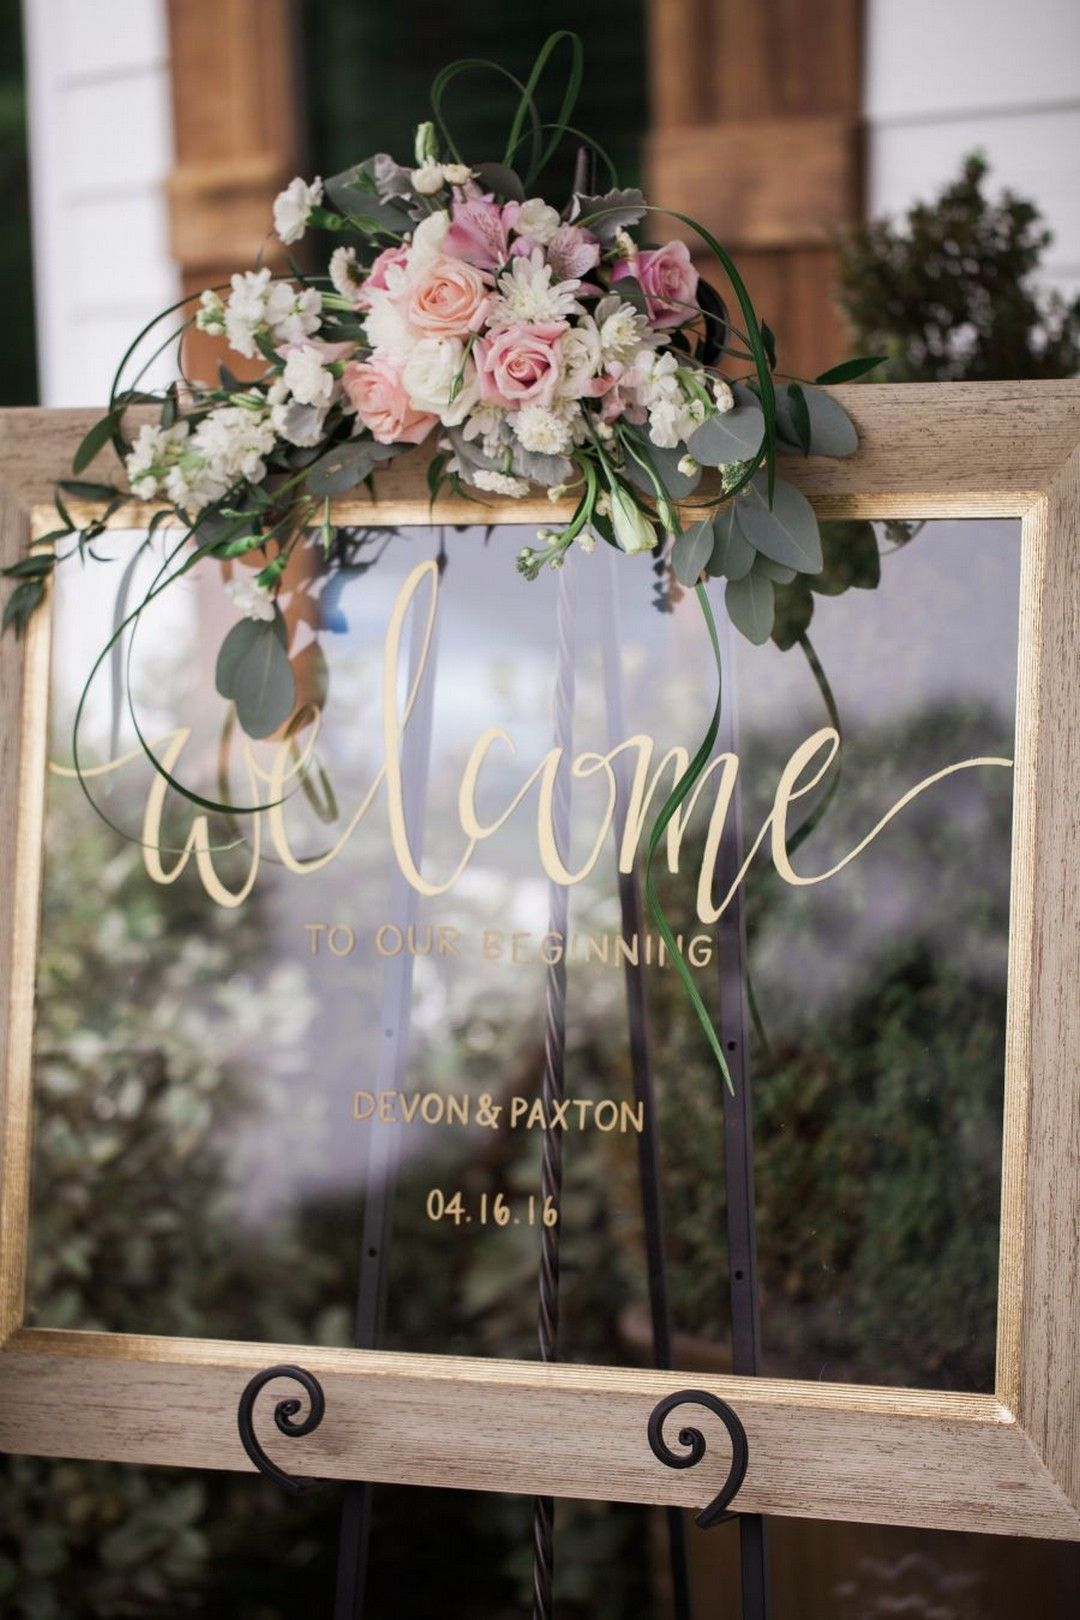 Wedding reception wedding decorations 2018  Romantic and Rustic Guest Book for Wedding  Wedding Decorations